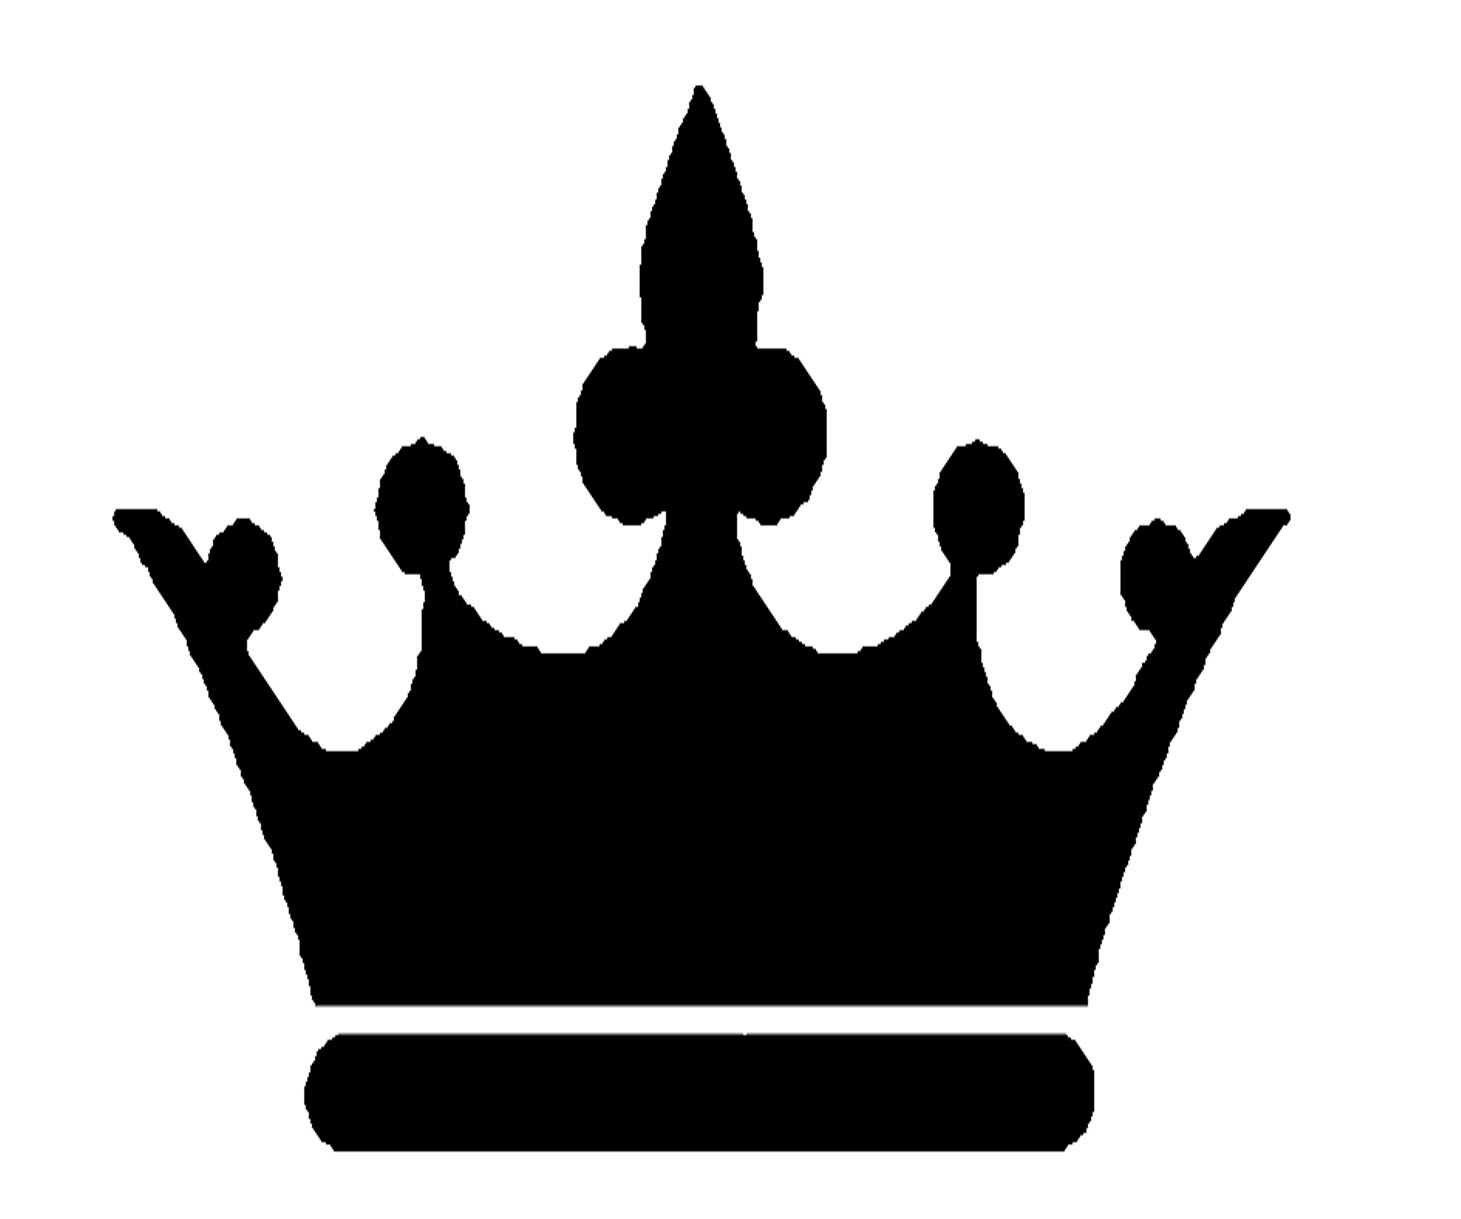 Free Crown Clipart, Download Free Clip Art, Free Clip Art on.